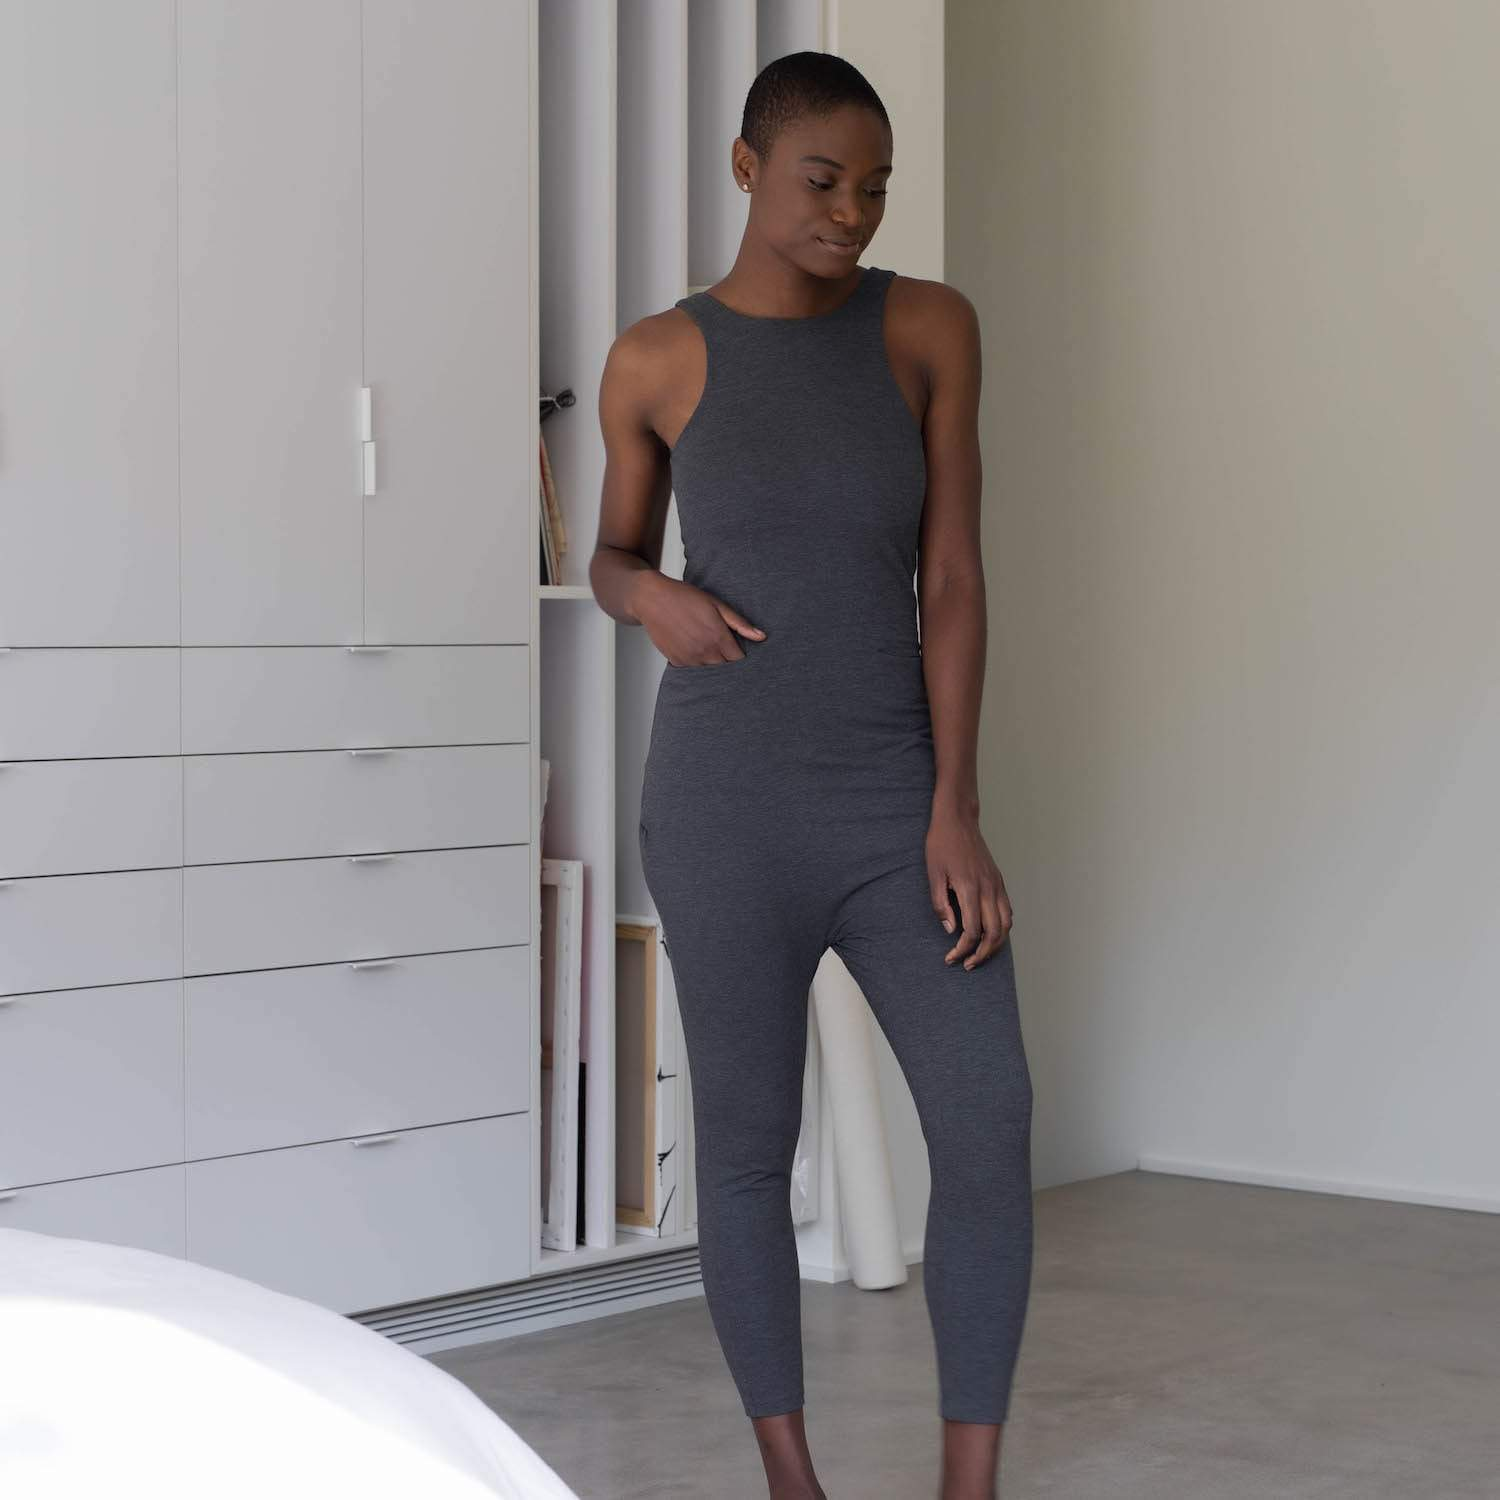 Lunya Sleepwear Restore Pocket Jumpsuit - #Charcoal